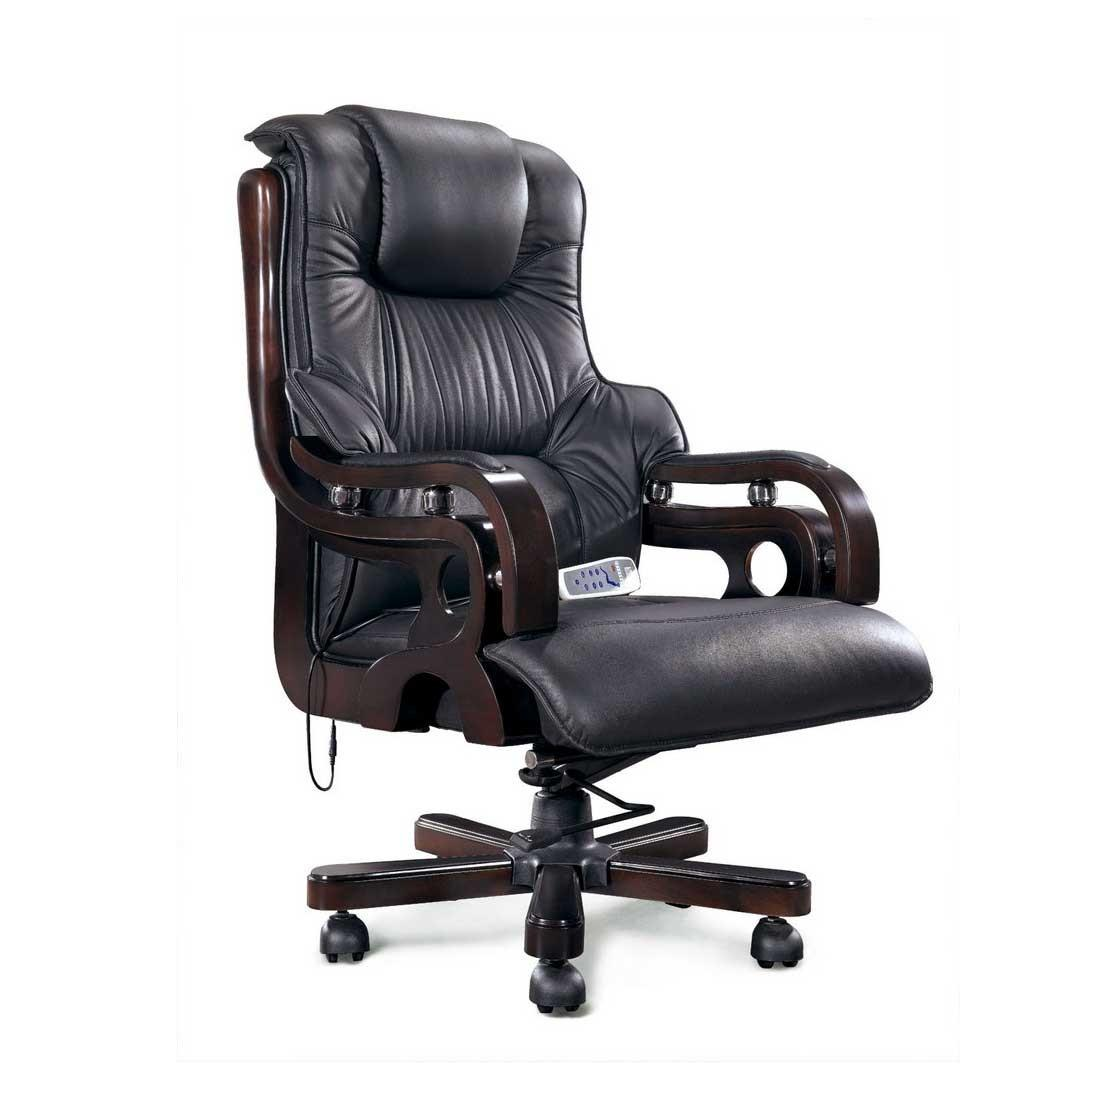 High End Office Chairs Elegant Design